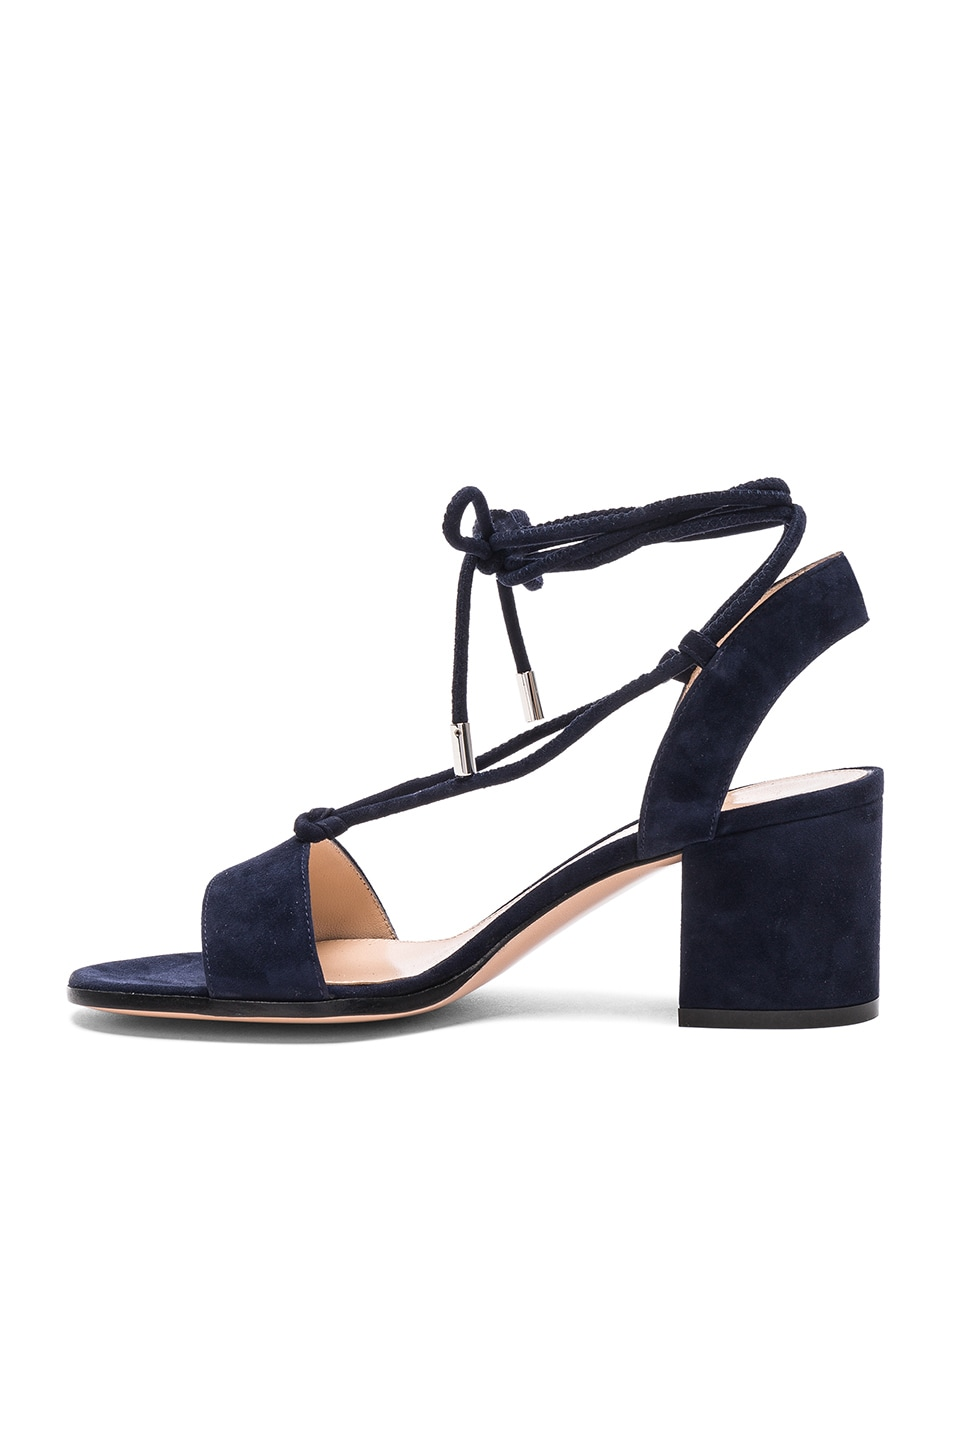 Image 5 of Gianvito Rossi Suede Lace Up Leather Sandals in Denim